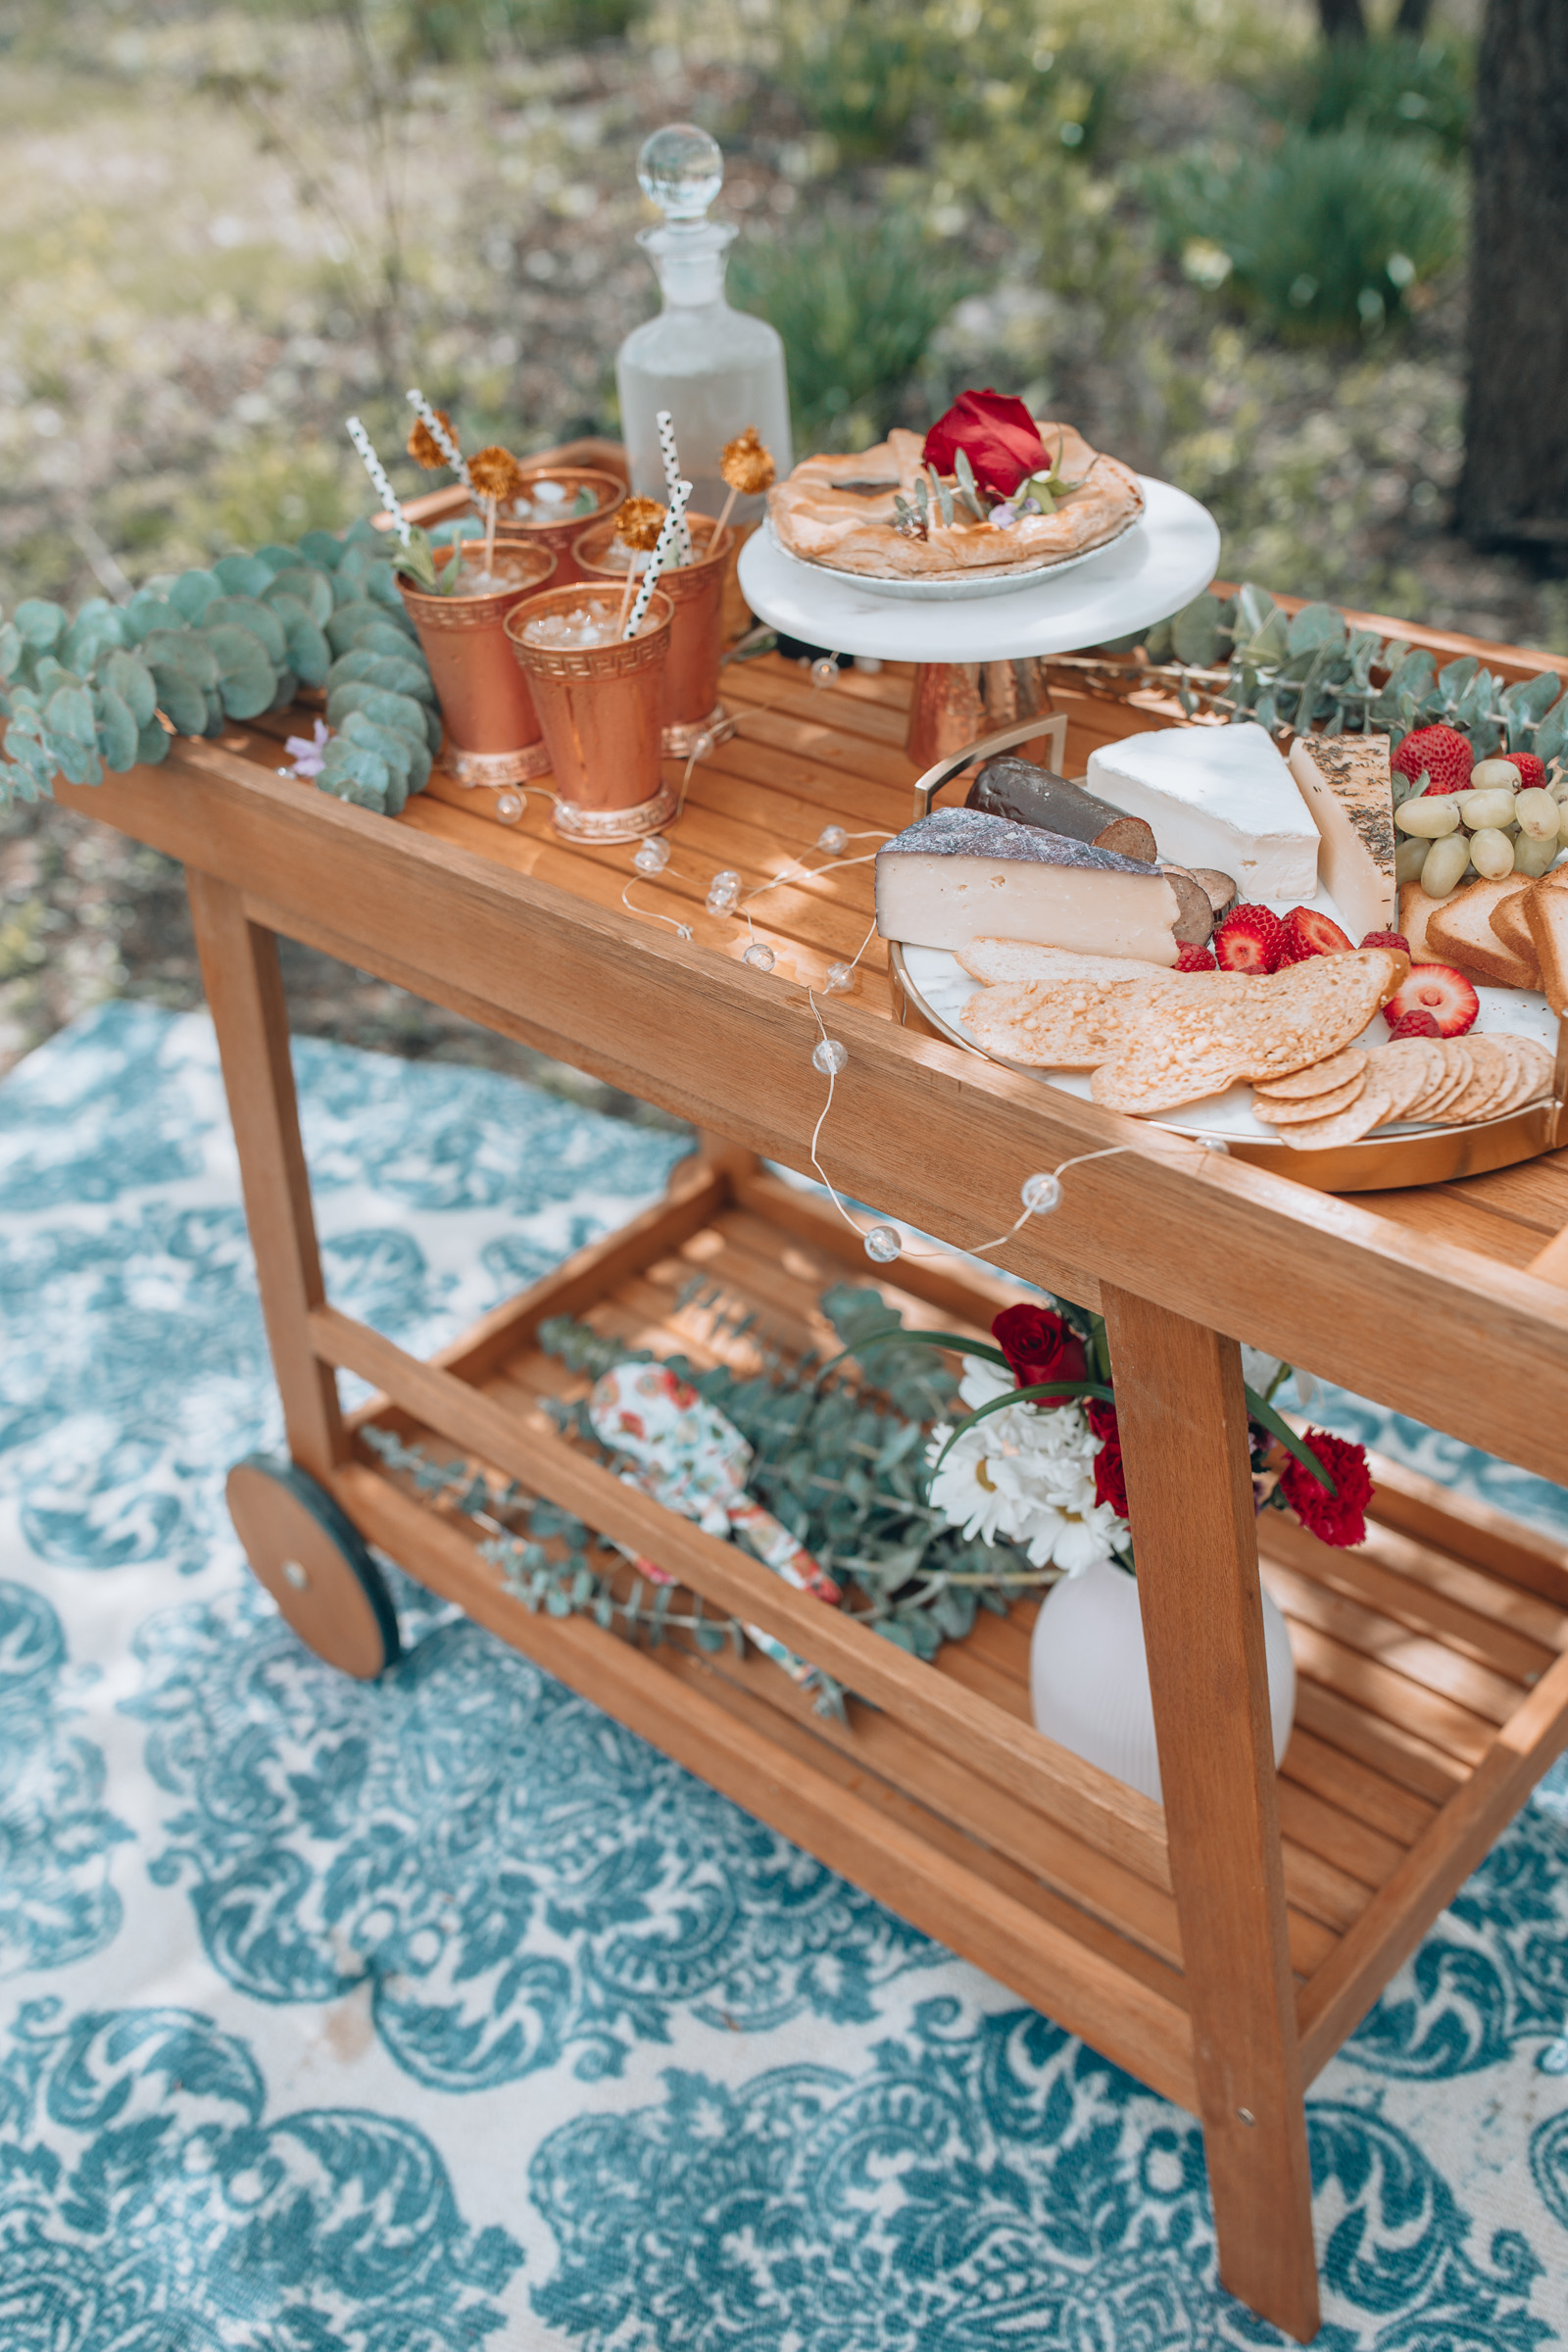 Tips for decorating a Kentucky Derby Style bar cart